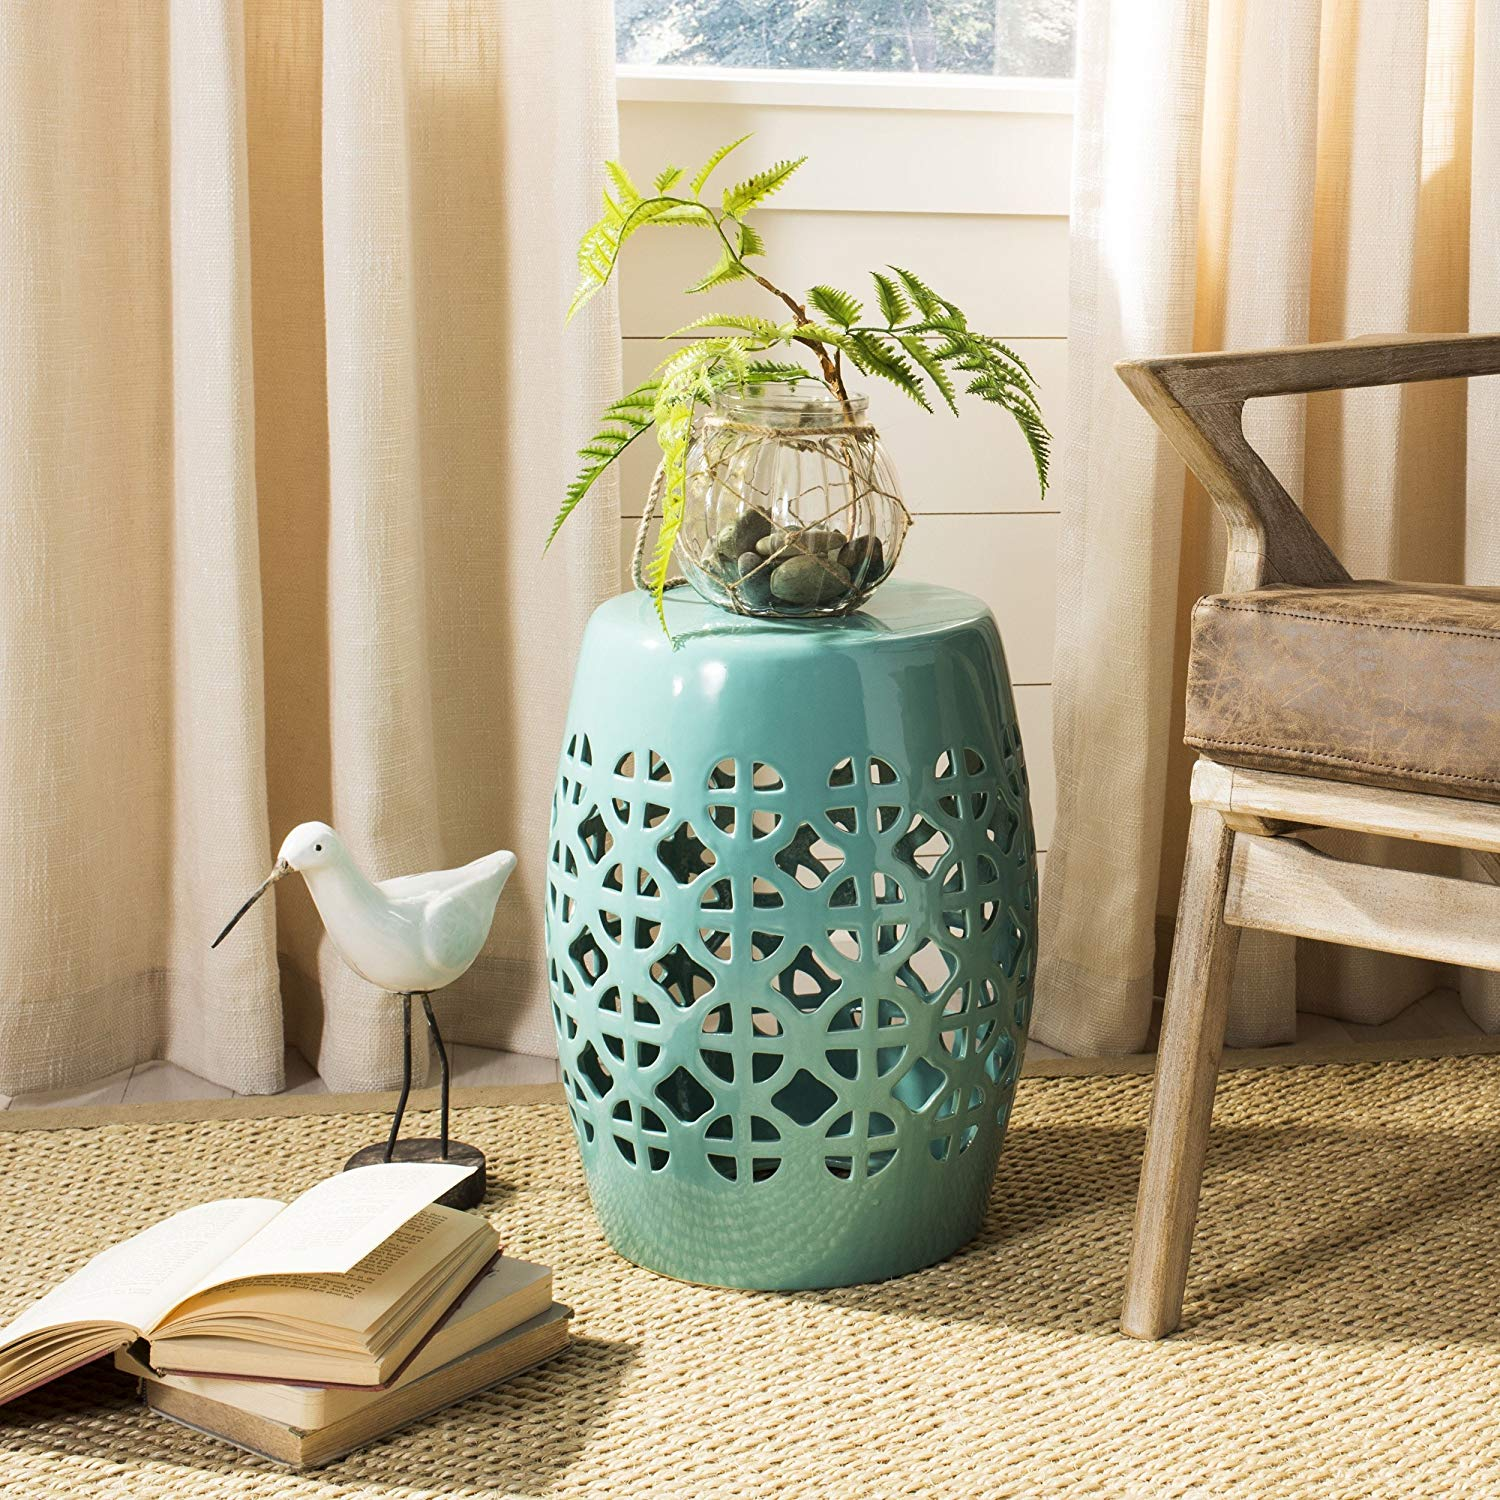 safavieh castle gardens collection circle lattice light blue ceramic accent table garden stool home kitchen sheesham bedside butcher block countertop brass sofa with drawers crate